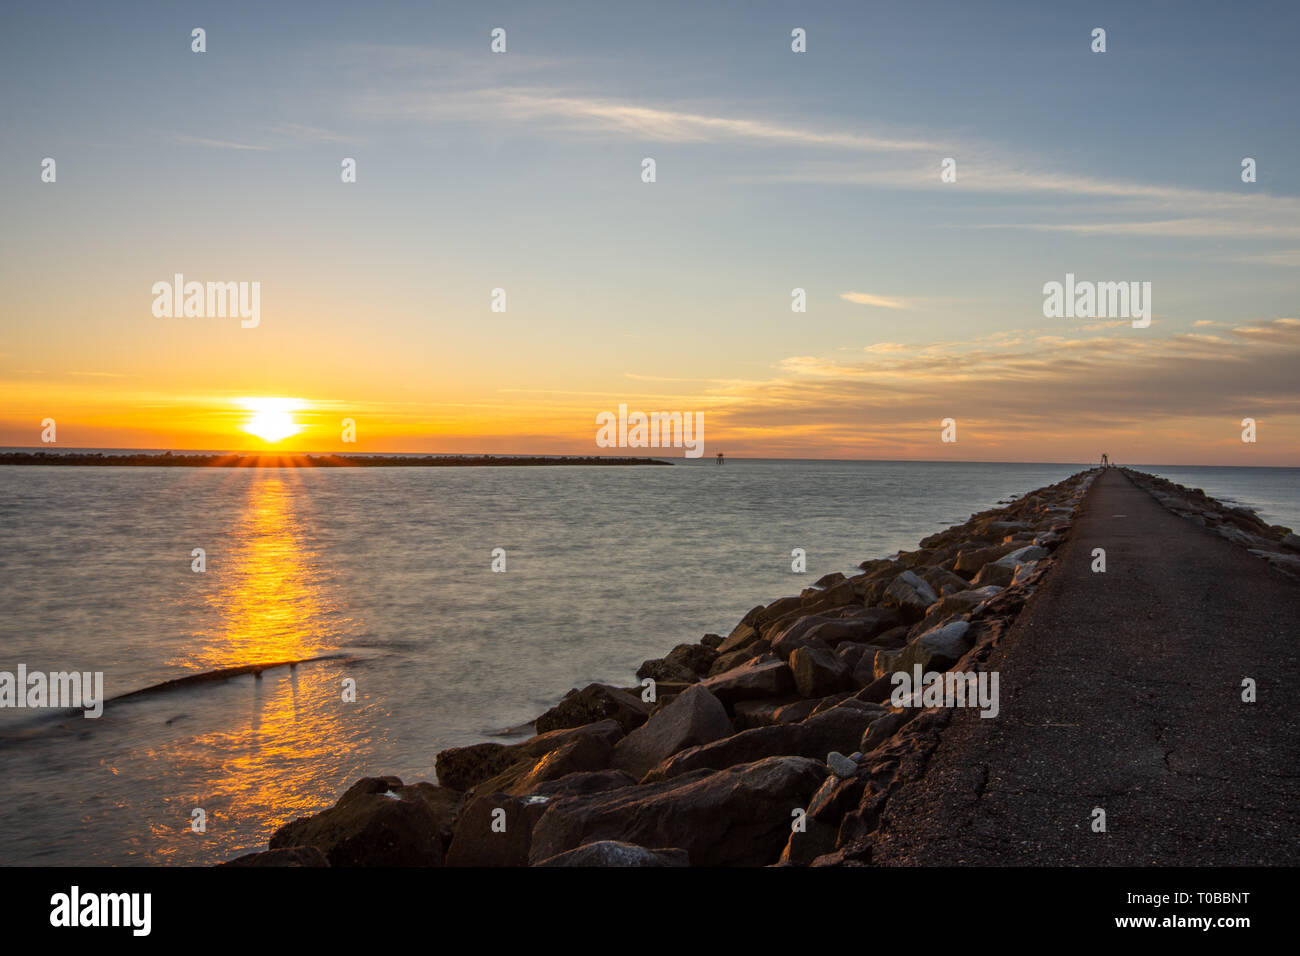 Sunrise at Huntington beach state park - Stock Image